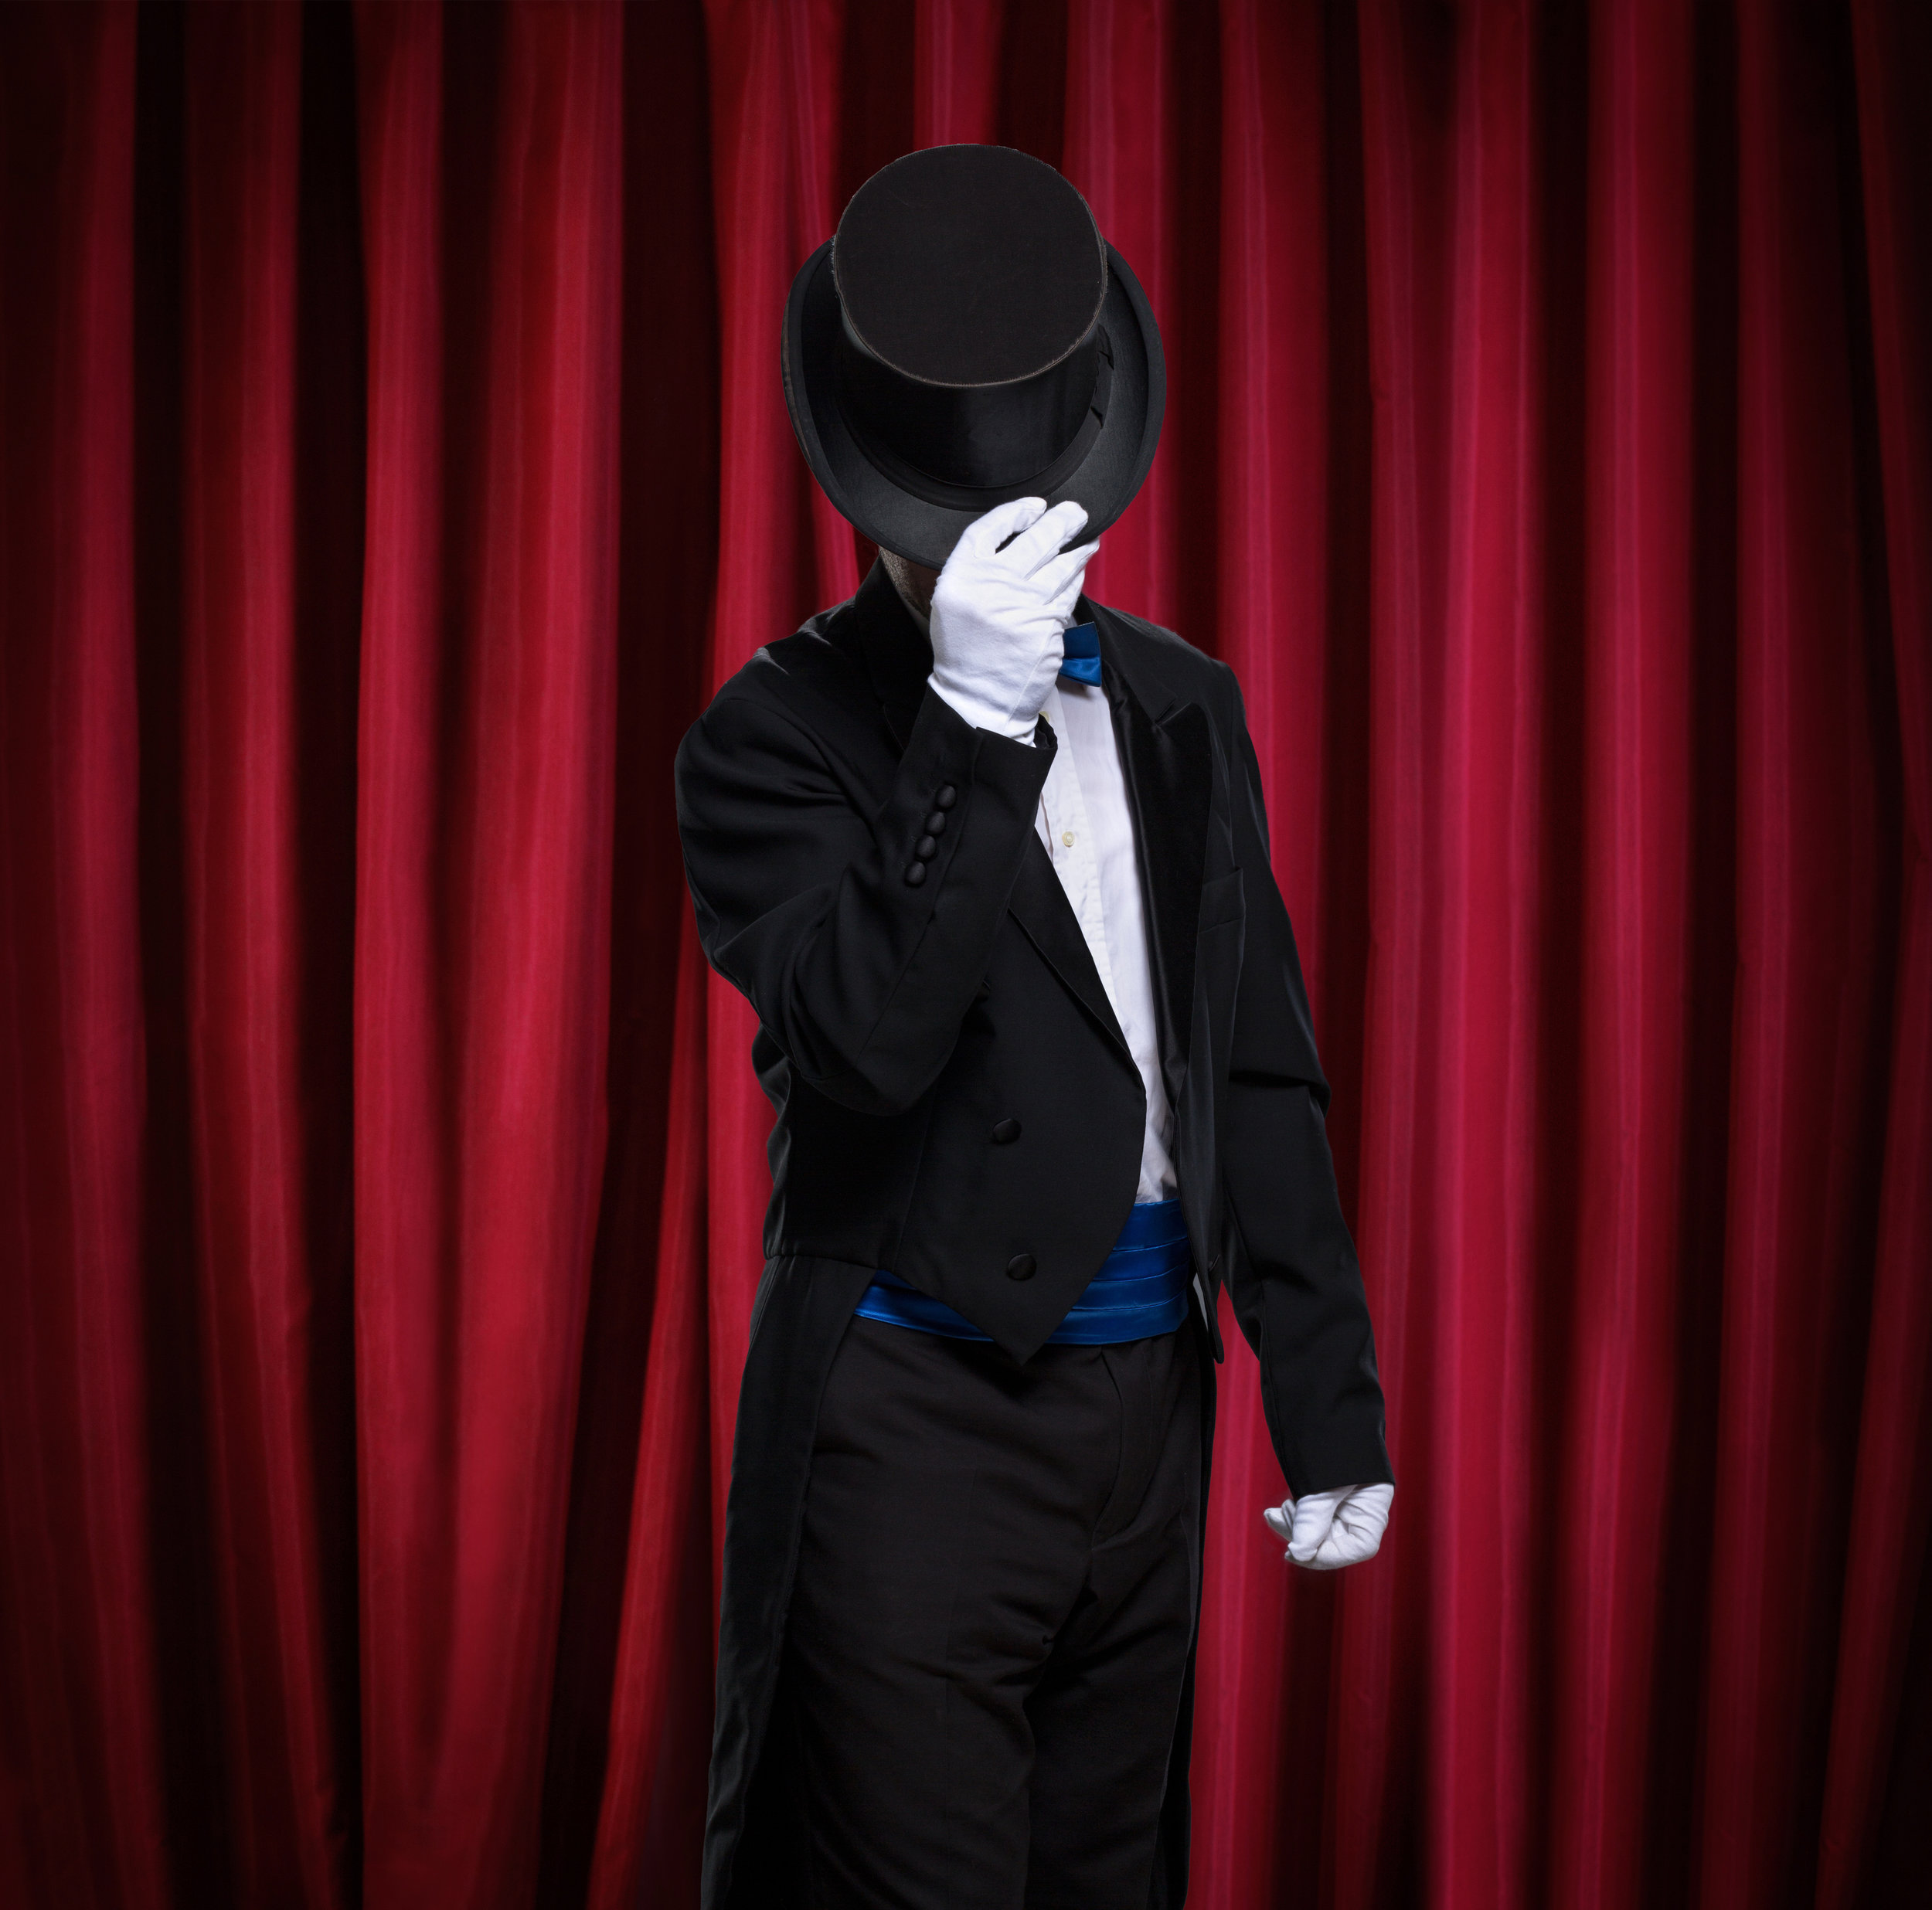 Enter Martini's dressing room to uncover the mystery of the Vanishing Act!